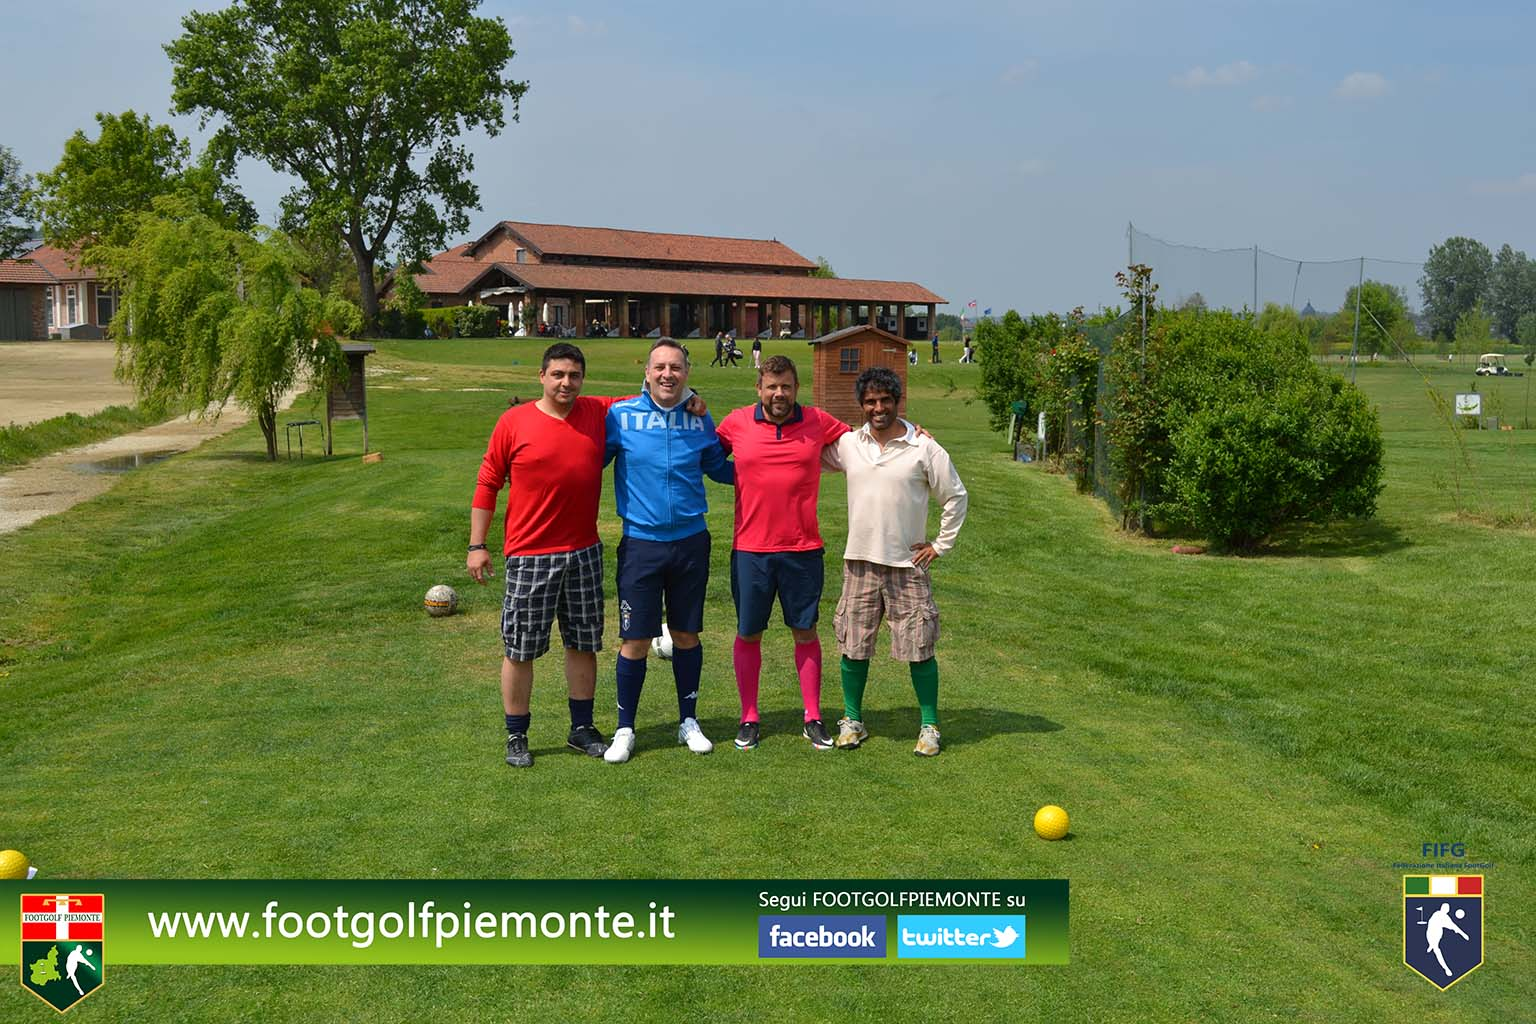 FOTO 9 Regions' Cup Footgolf Piemonte 2016 Golf Città di Asti (At) 30apr16-98